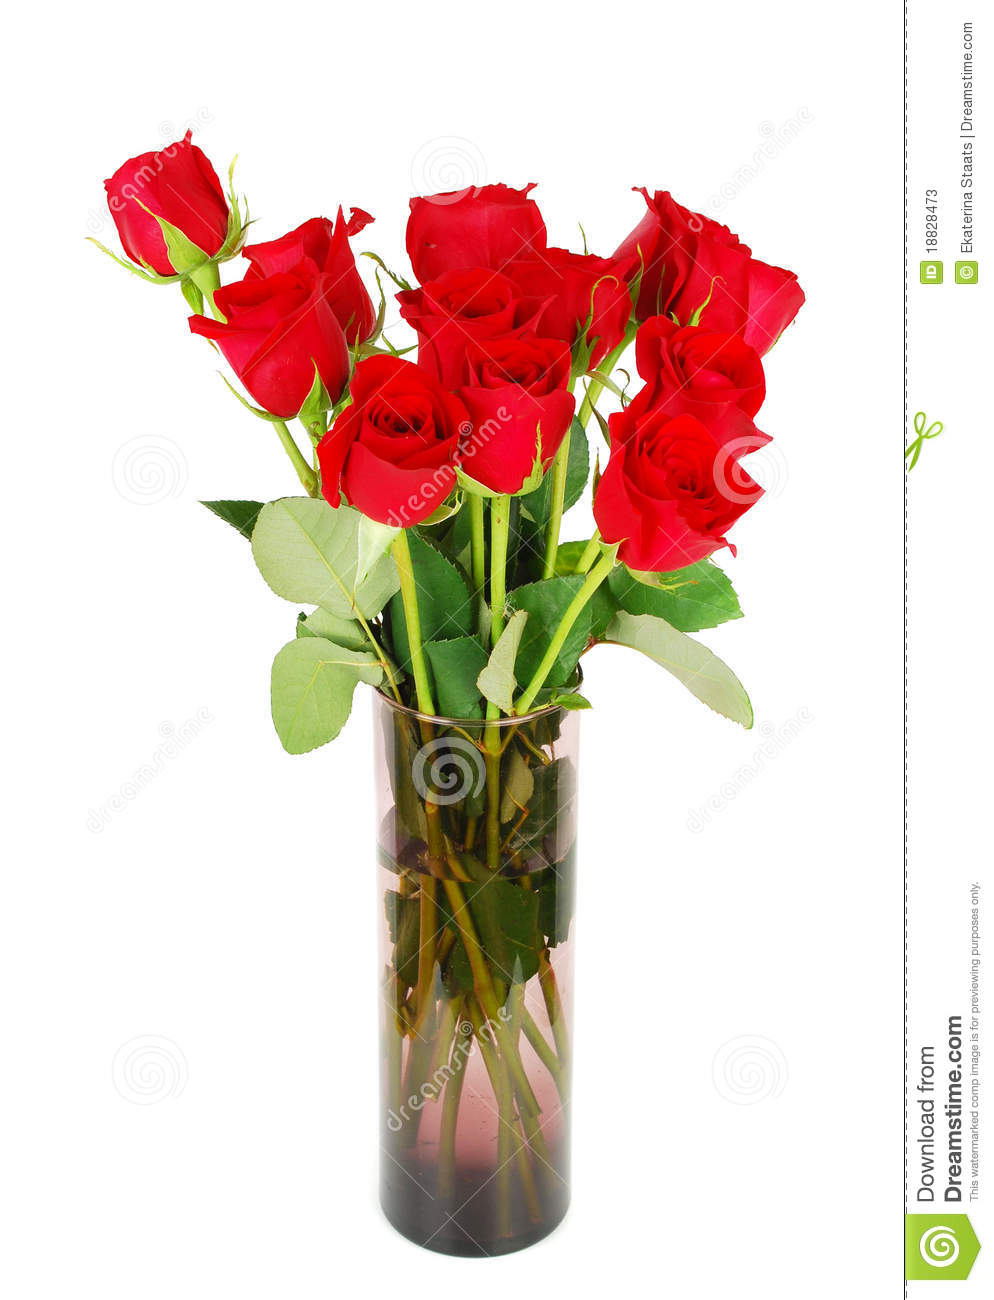 Bouquet Of Red Roses Stock Photos - Image: 18828473